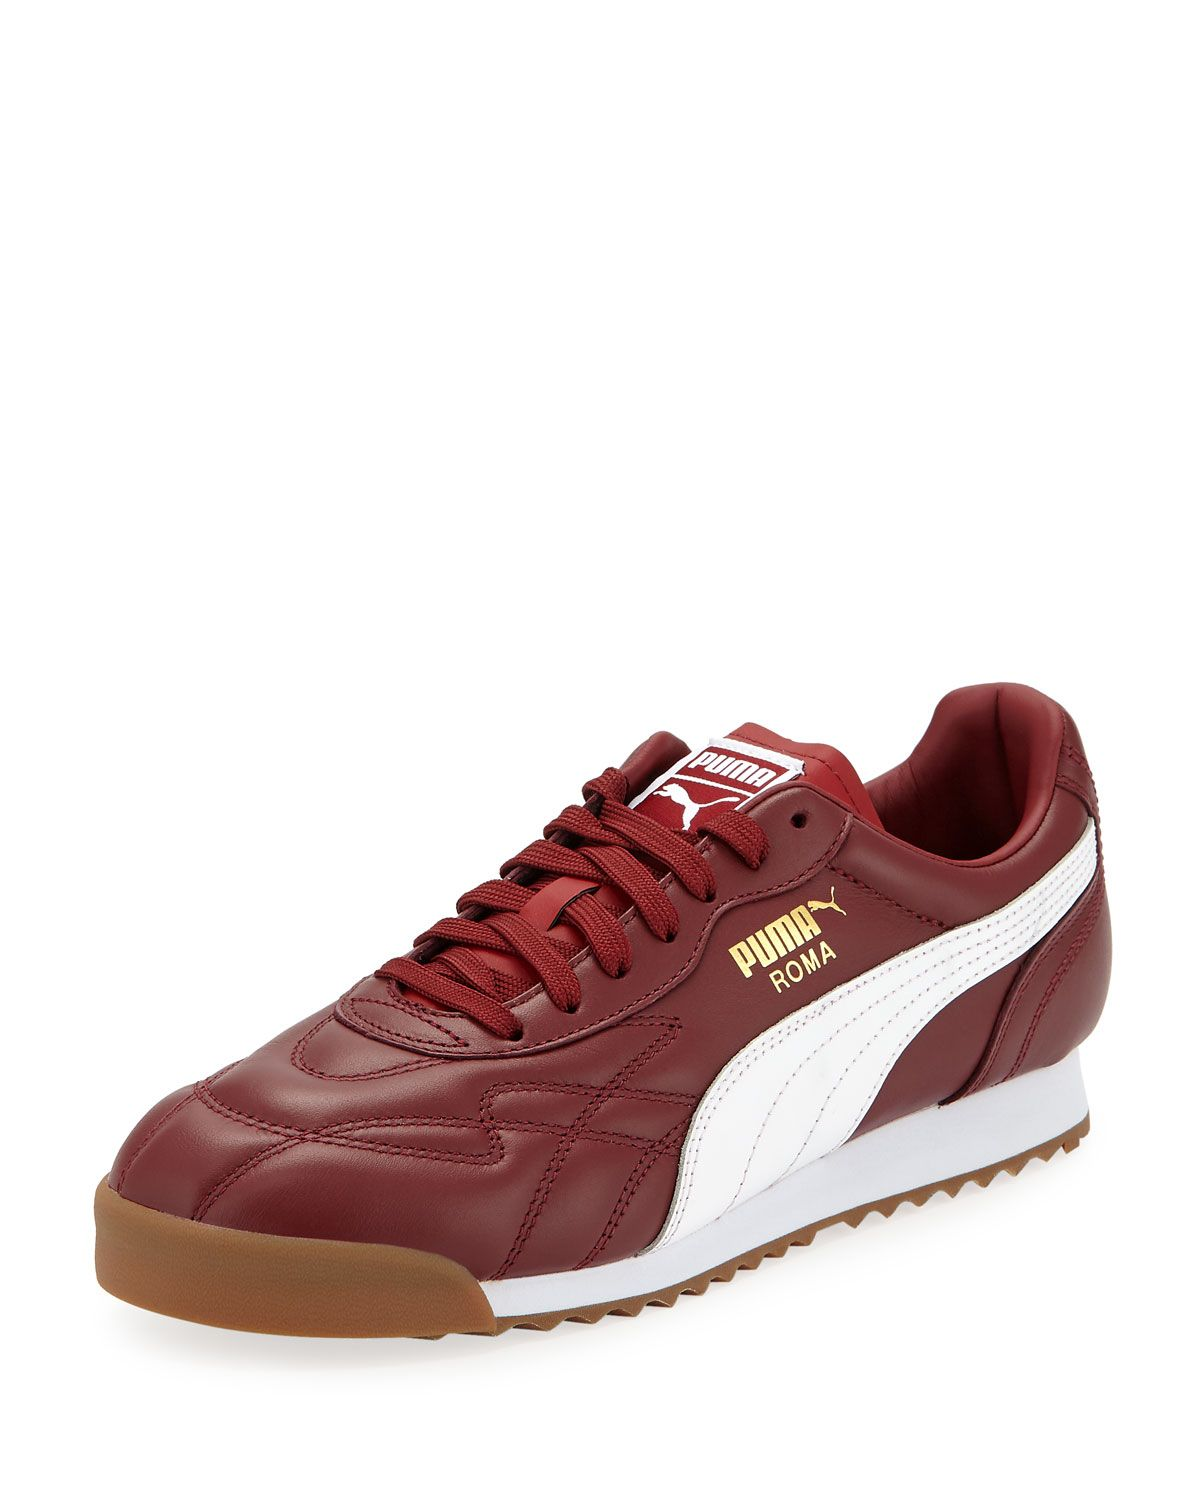 PUMA MEN'S ROMA ANNIVERSARY LEATHER SNEAKERS. #puma #shoes